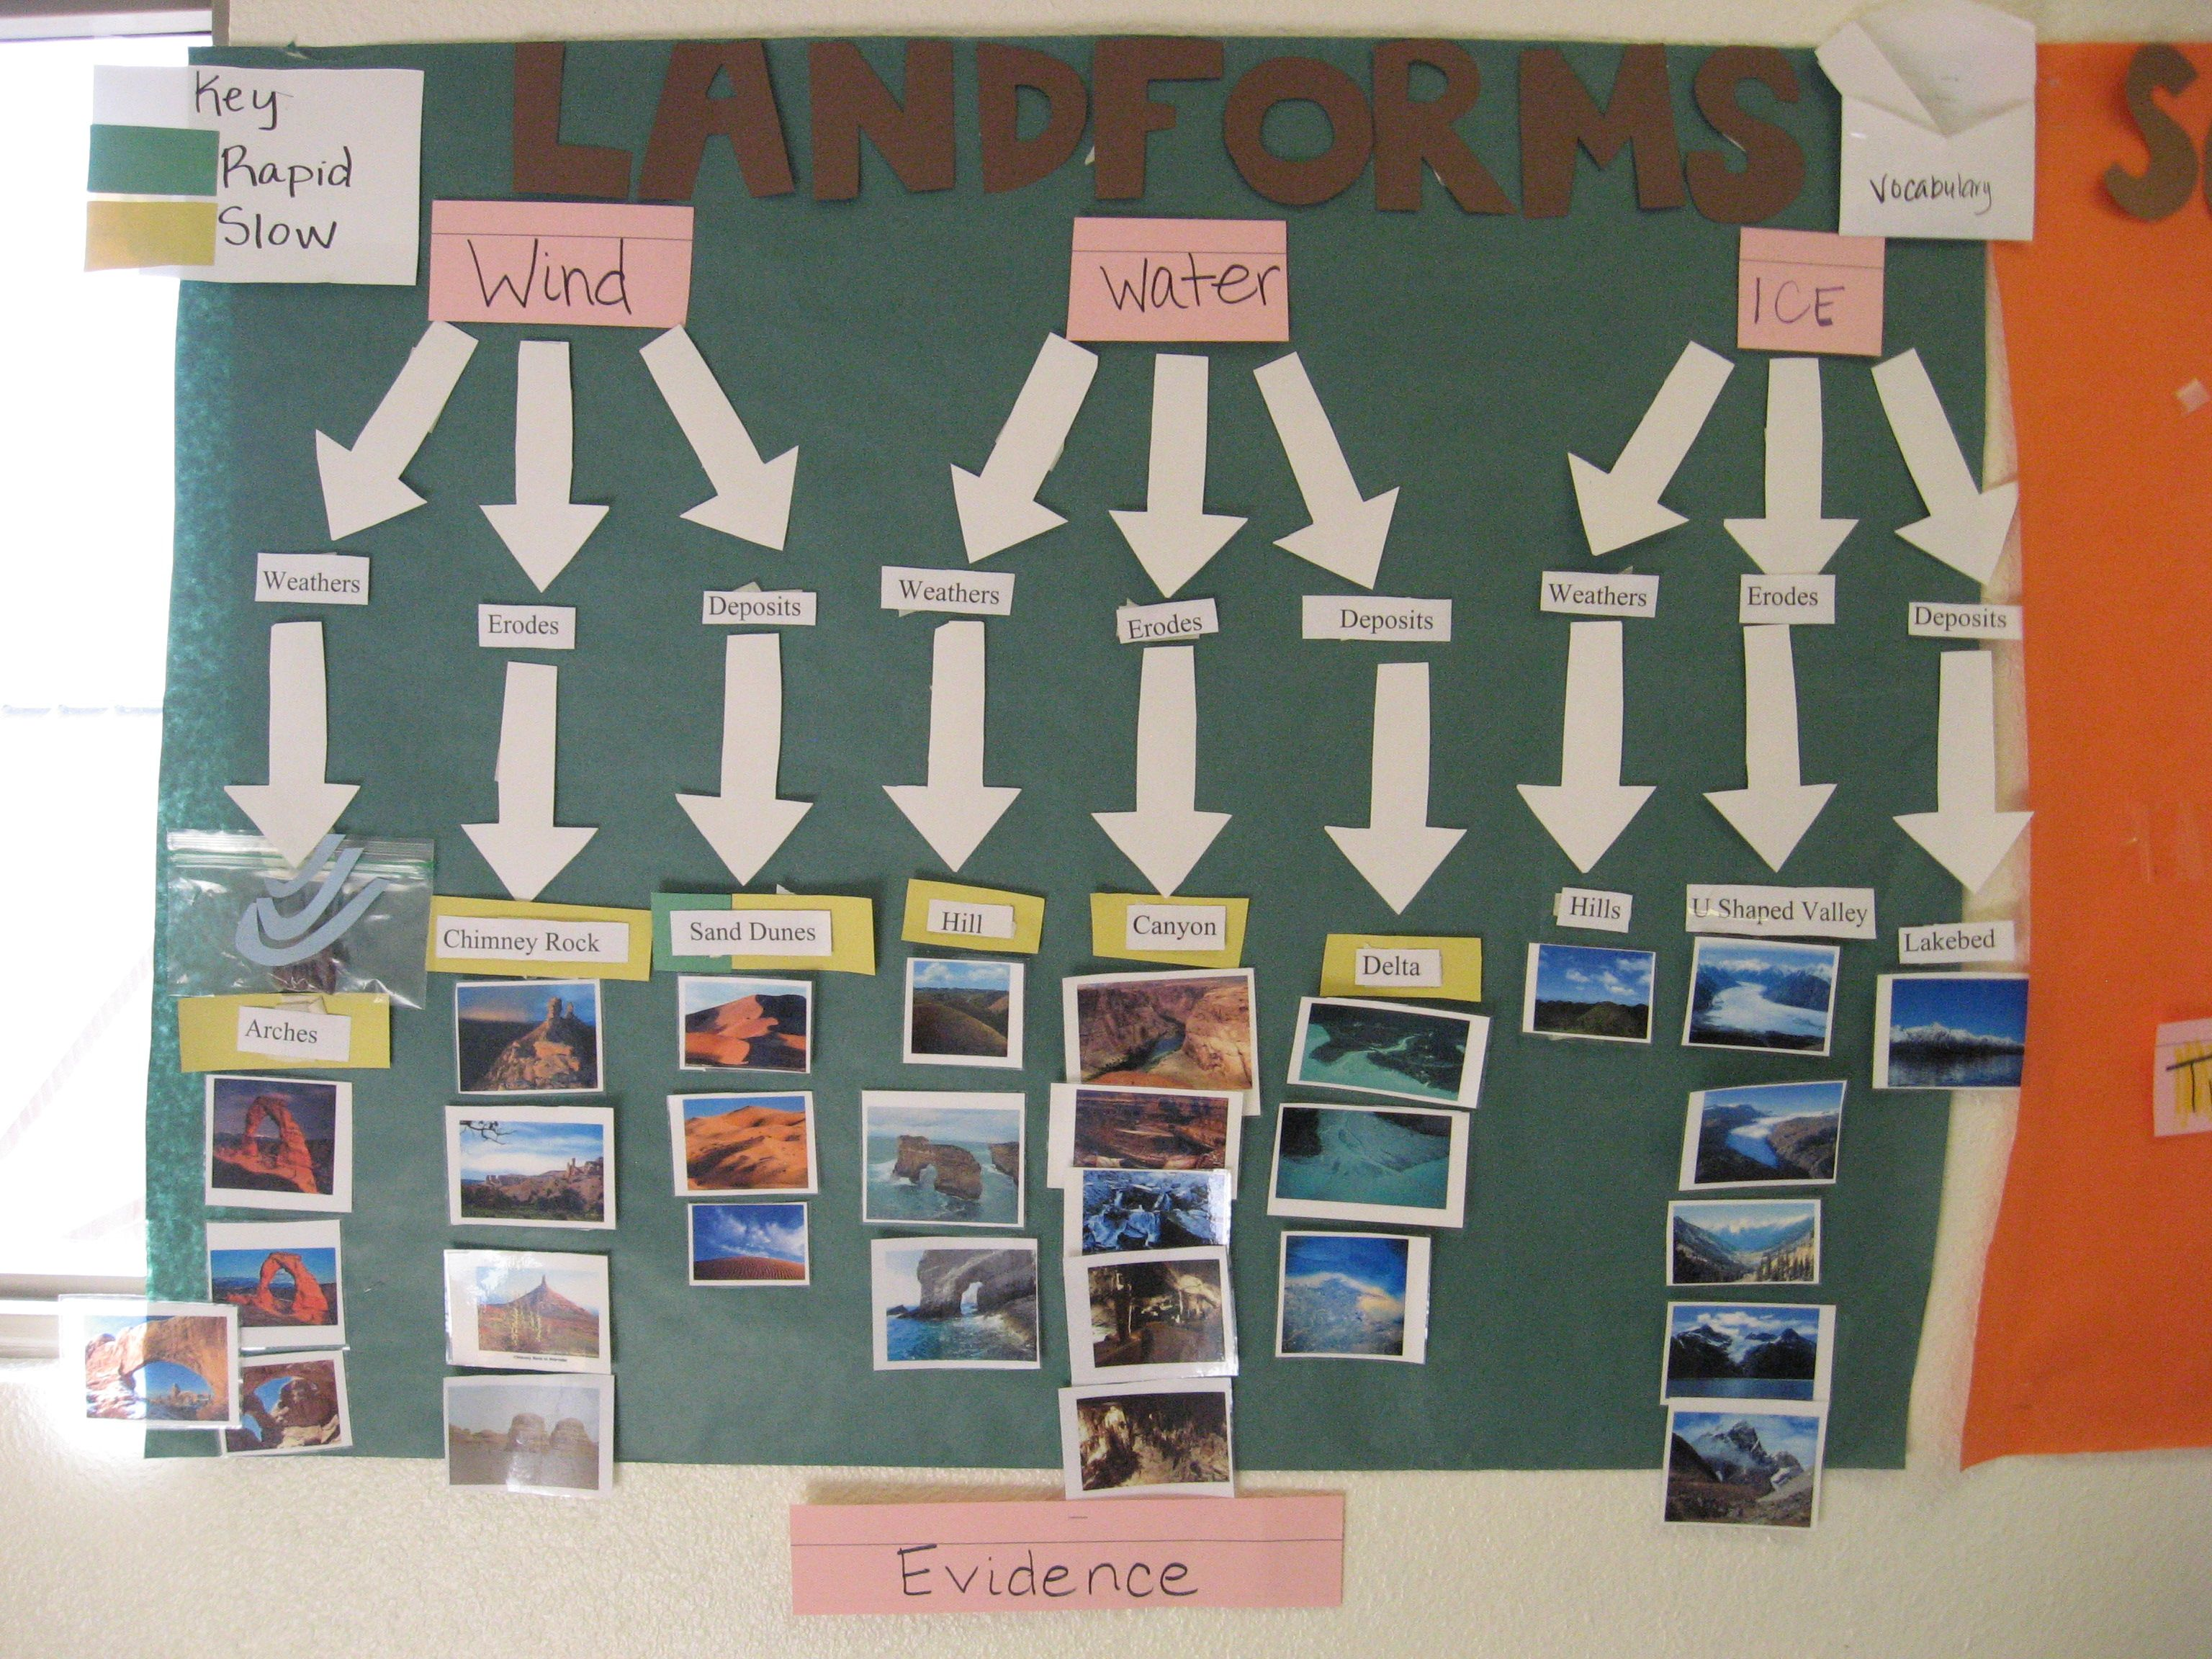 Landforms Weathering Erosion Deposition Wind Water